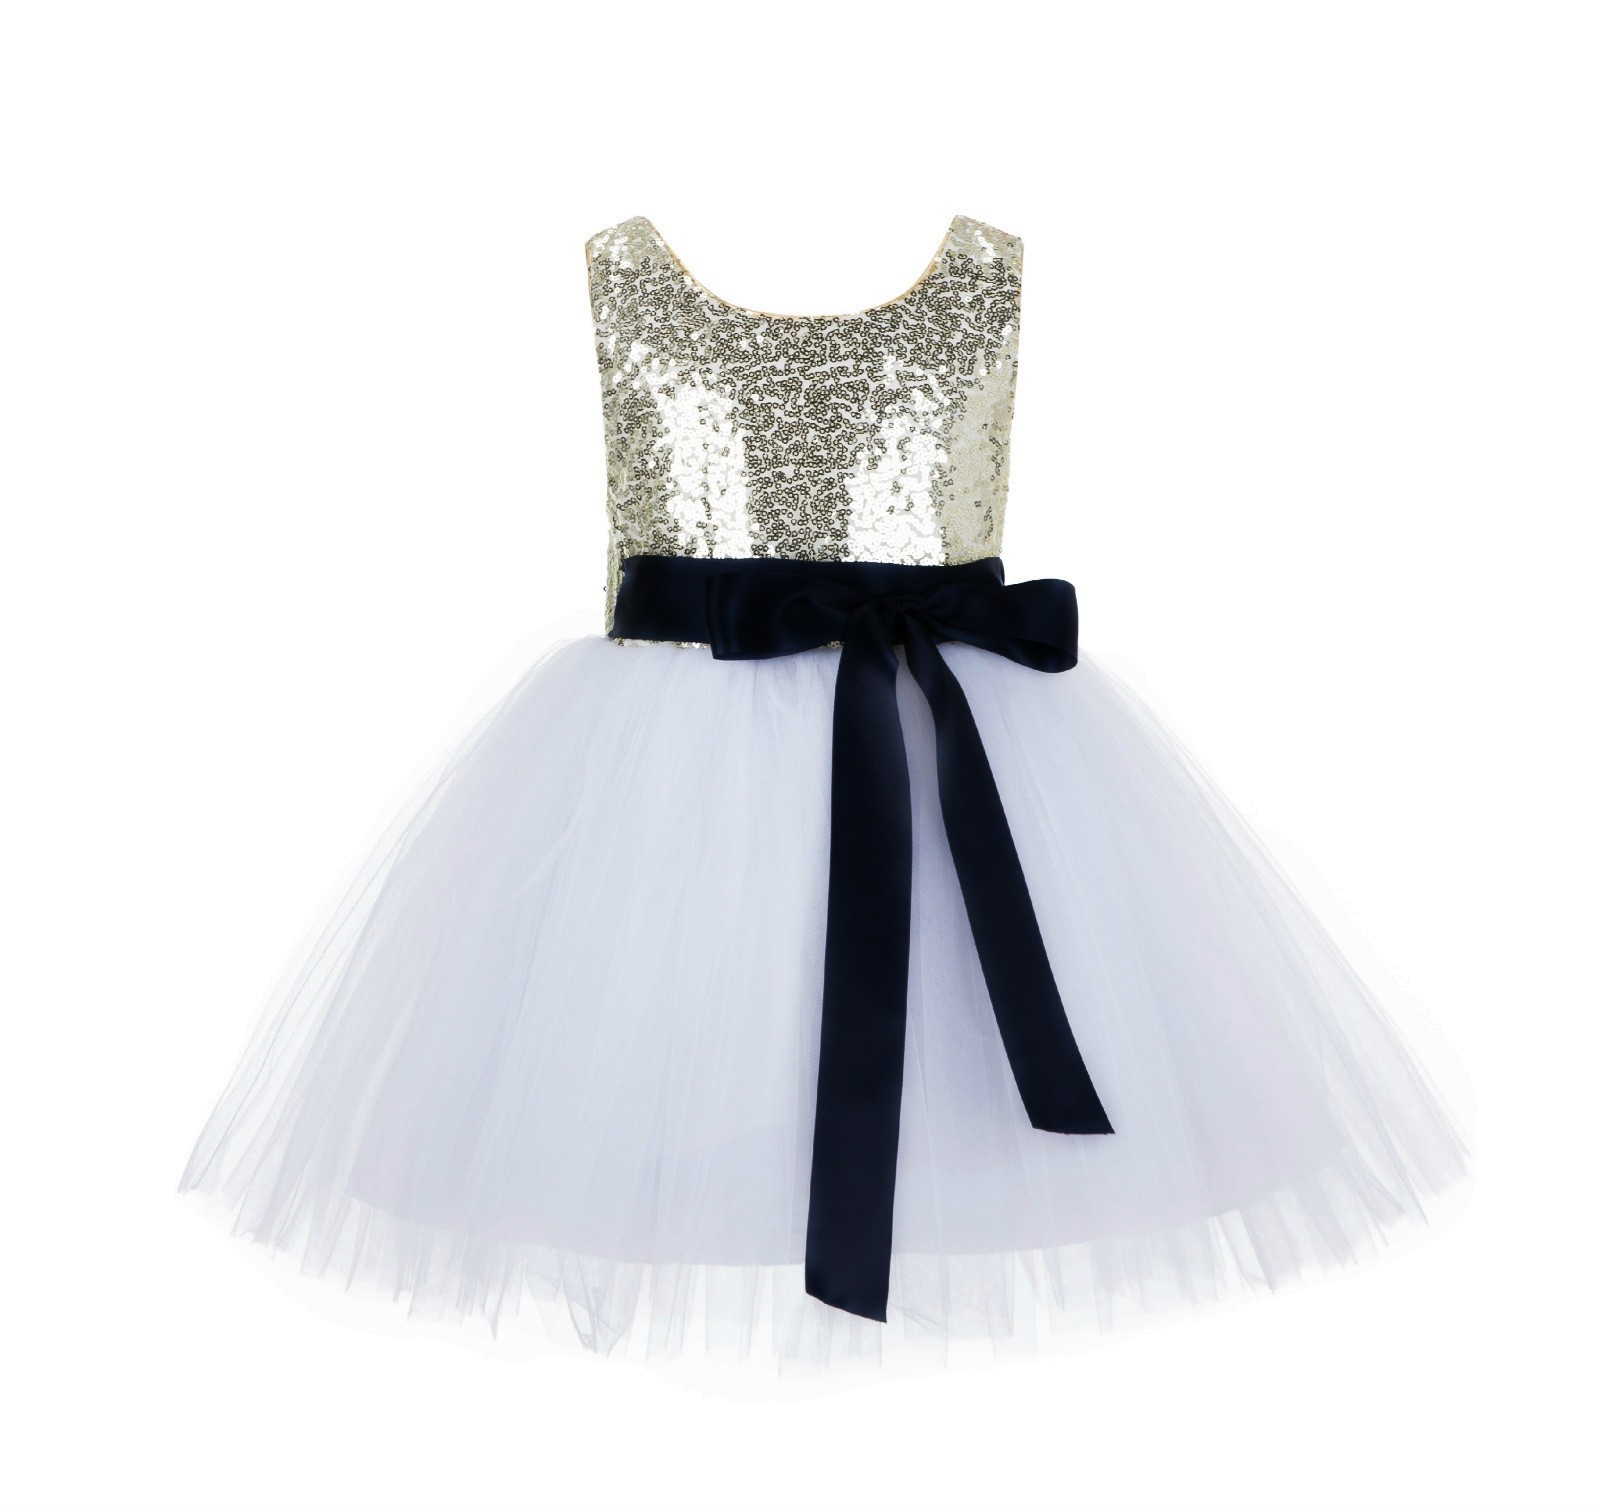 Goldwhiteblack Glitter Sequin Tulle Flower Girl Dress Recital